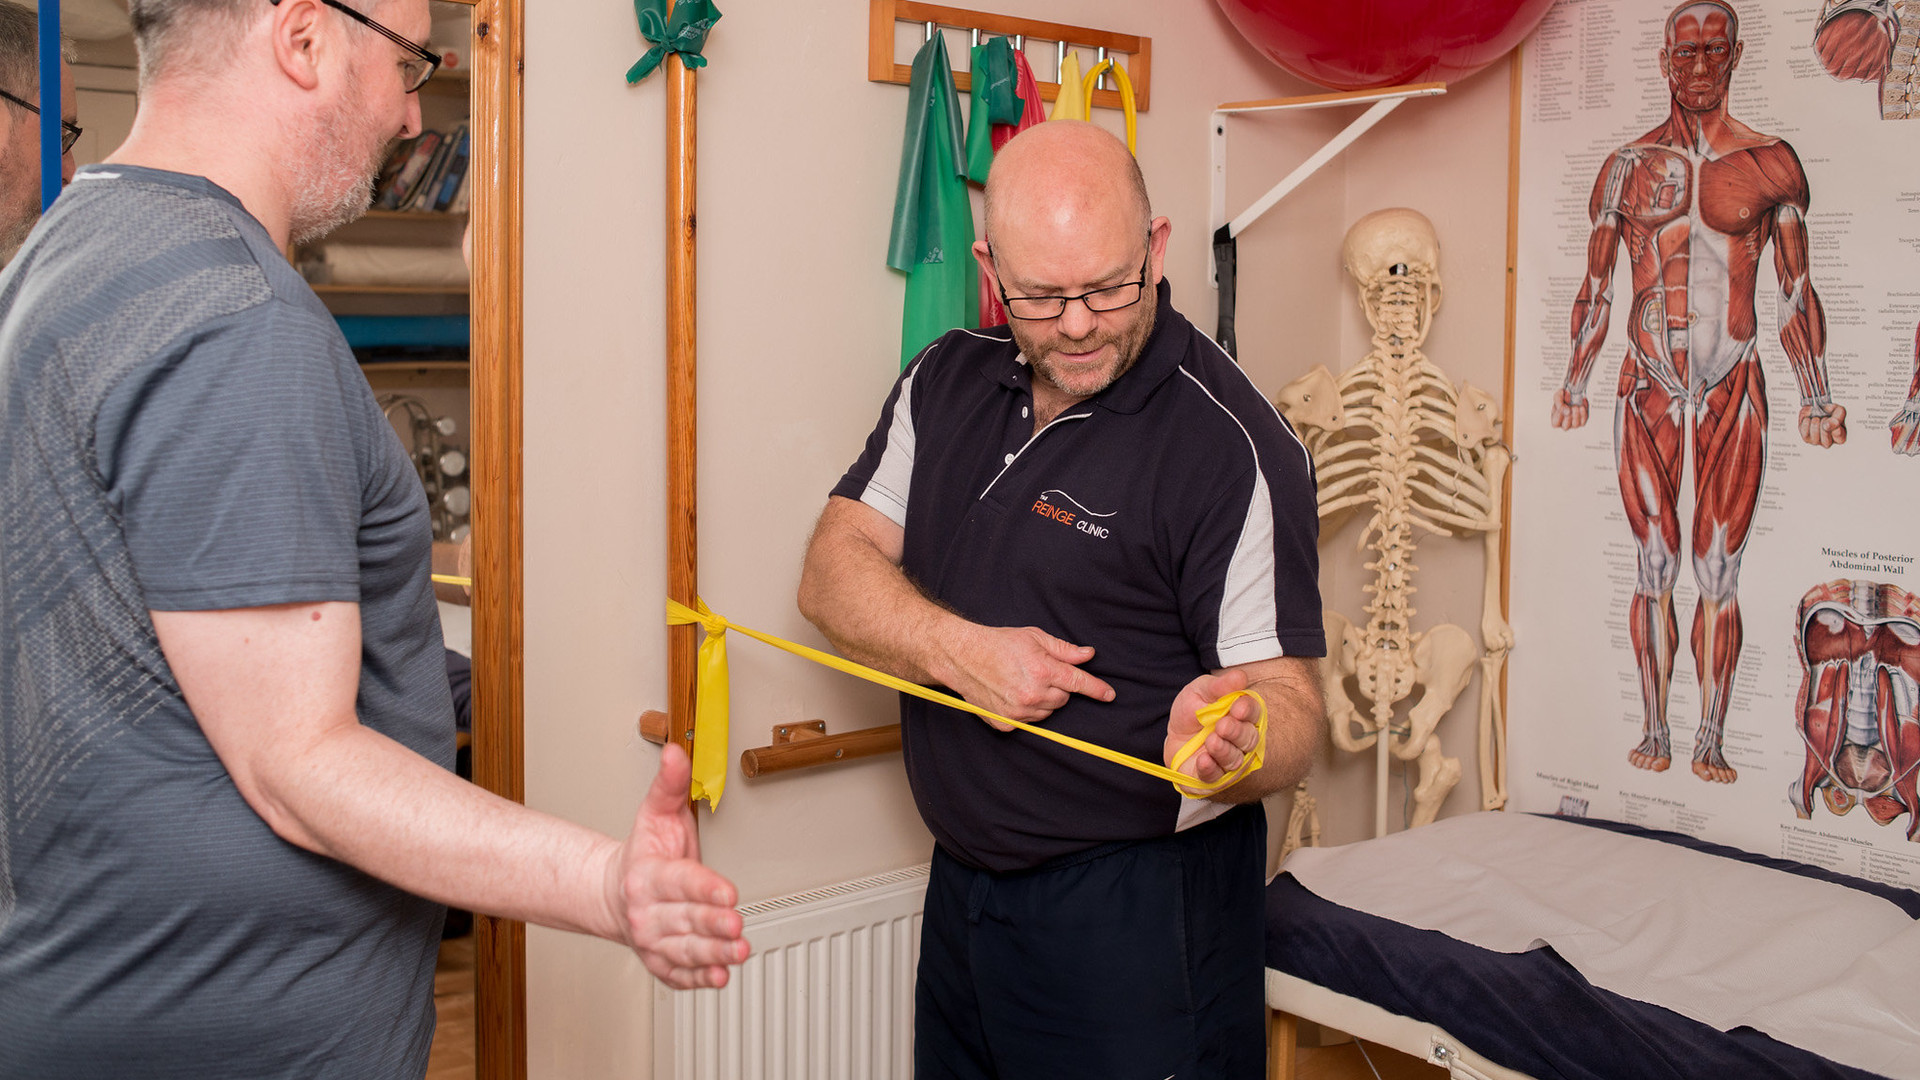 Physiotherapy at The Reinge Clinic Kenilworth, Portishead.